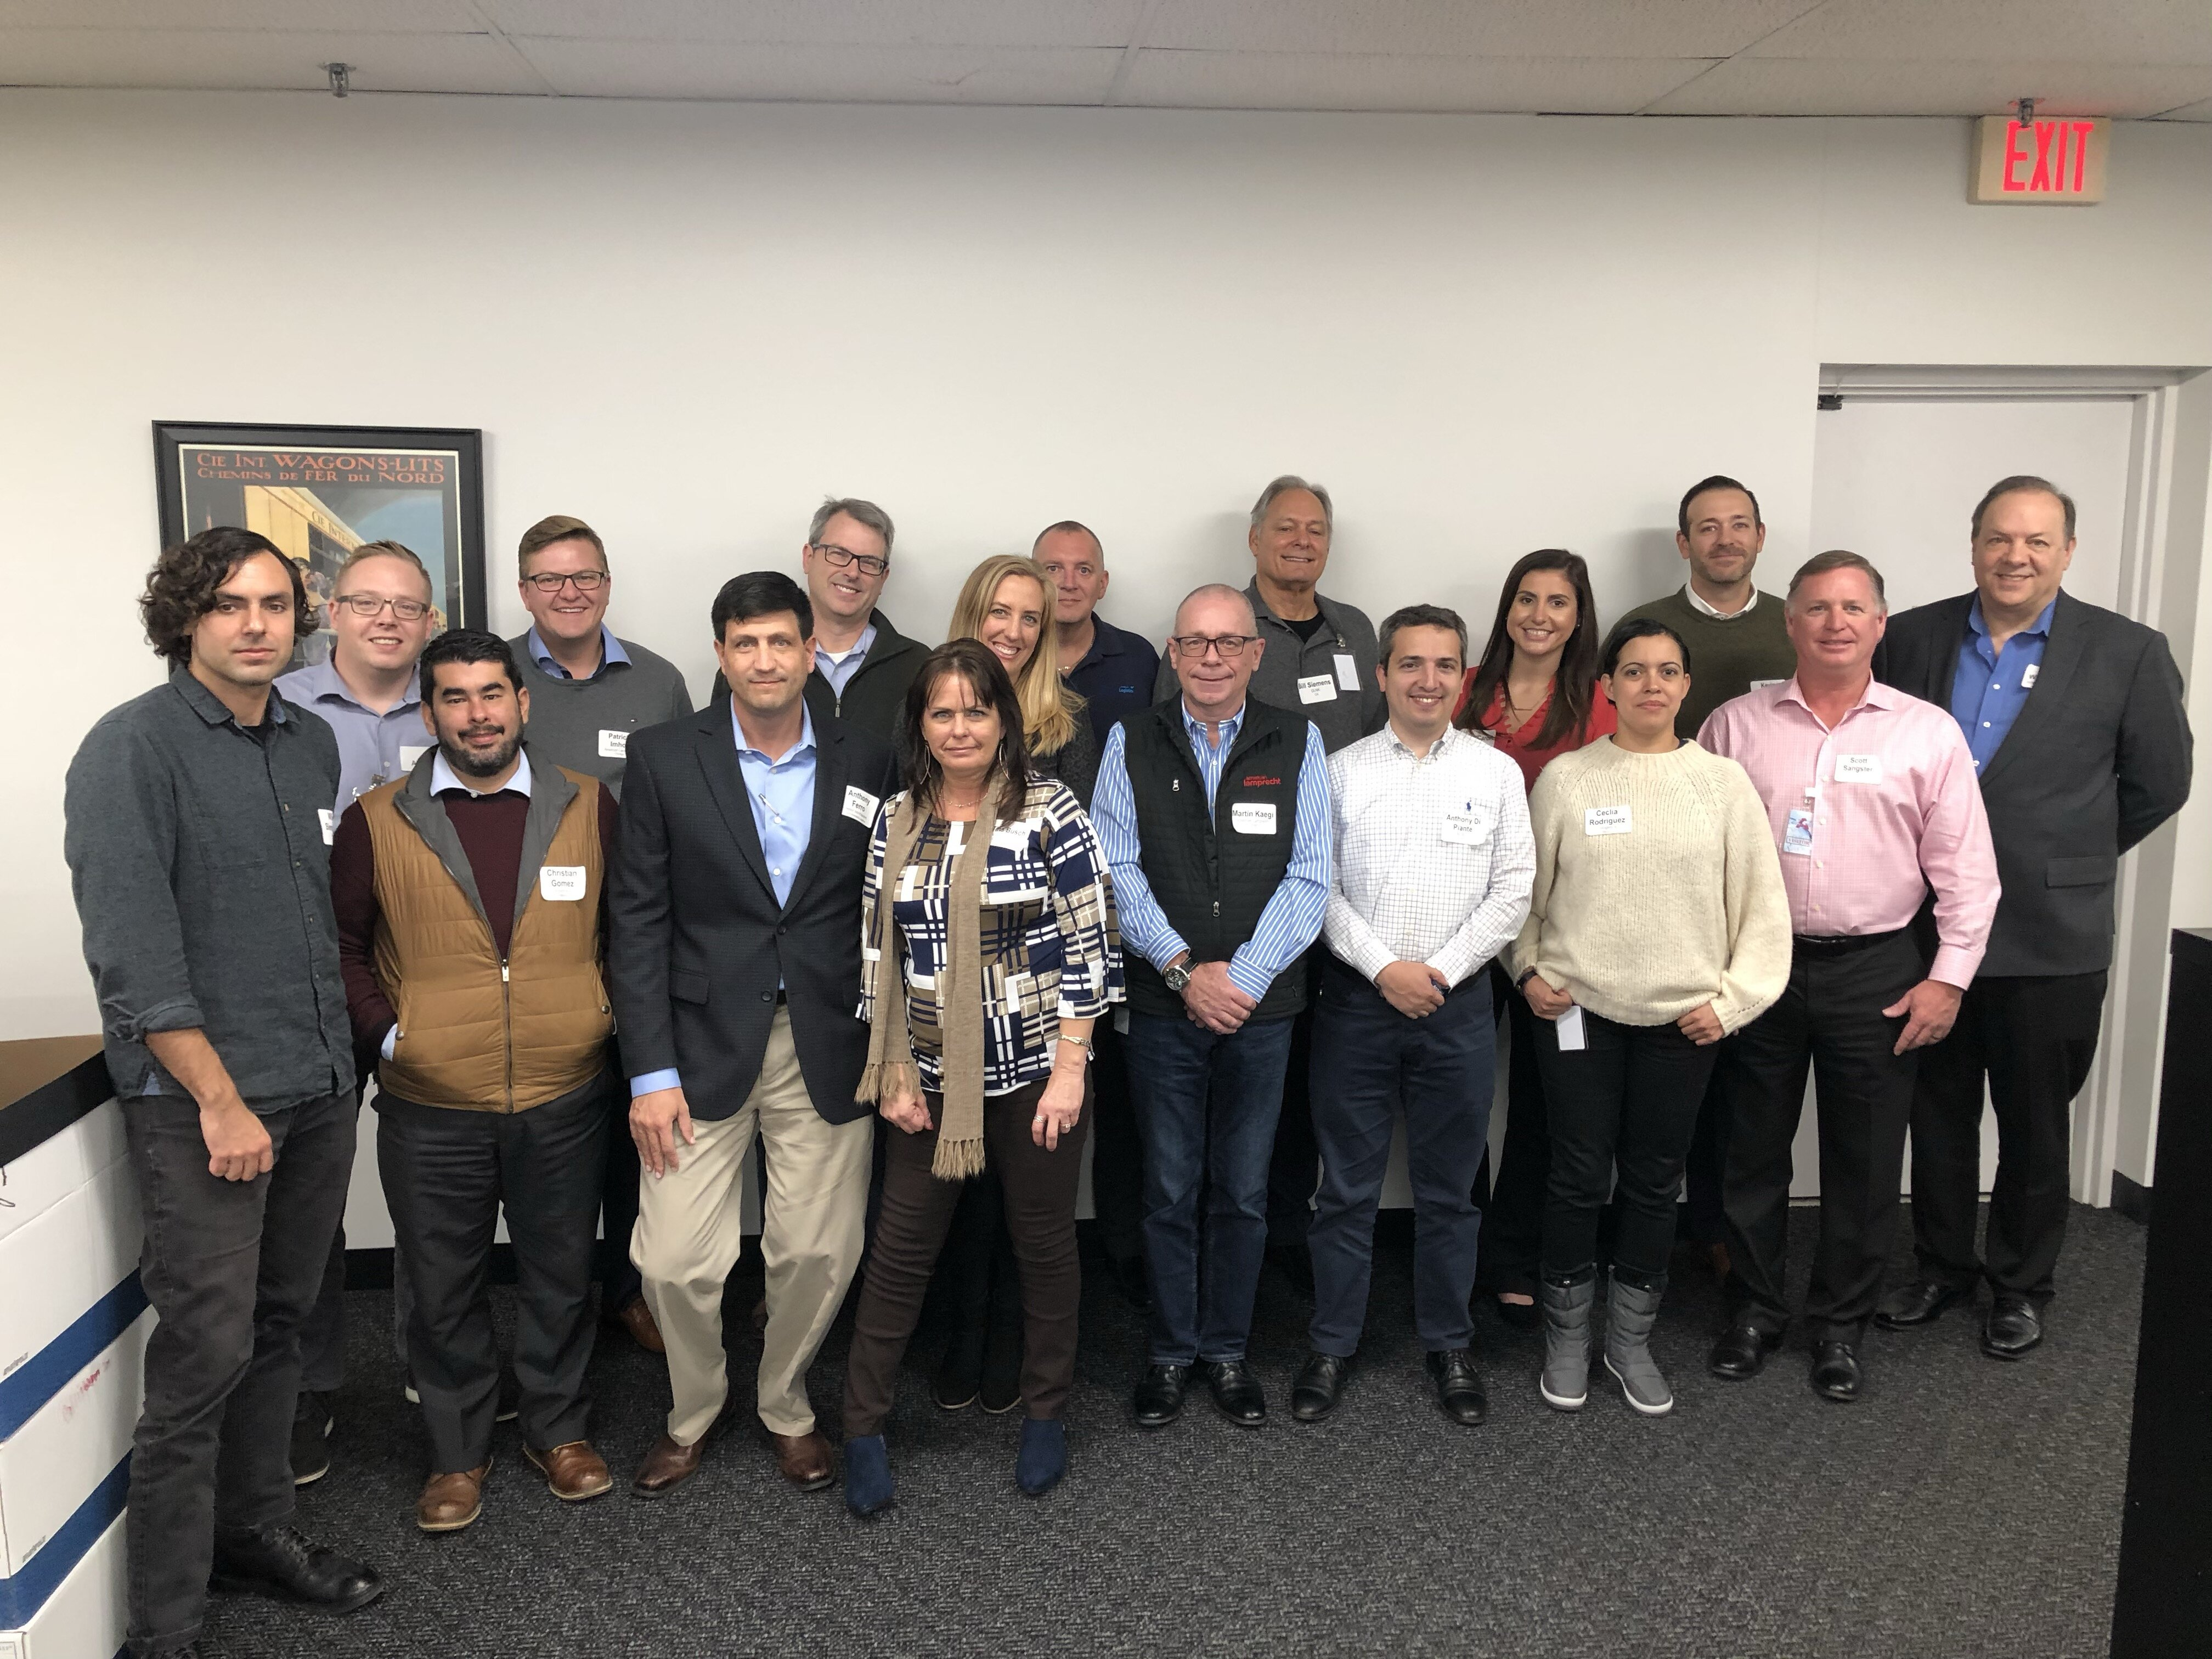 COUNTERING FLEXPORT: A STRATEGIC MEETING AND DISCUSSION IN CHICAGO